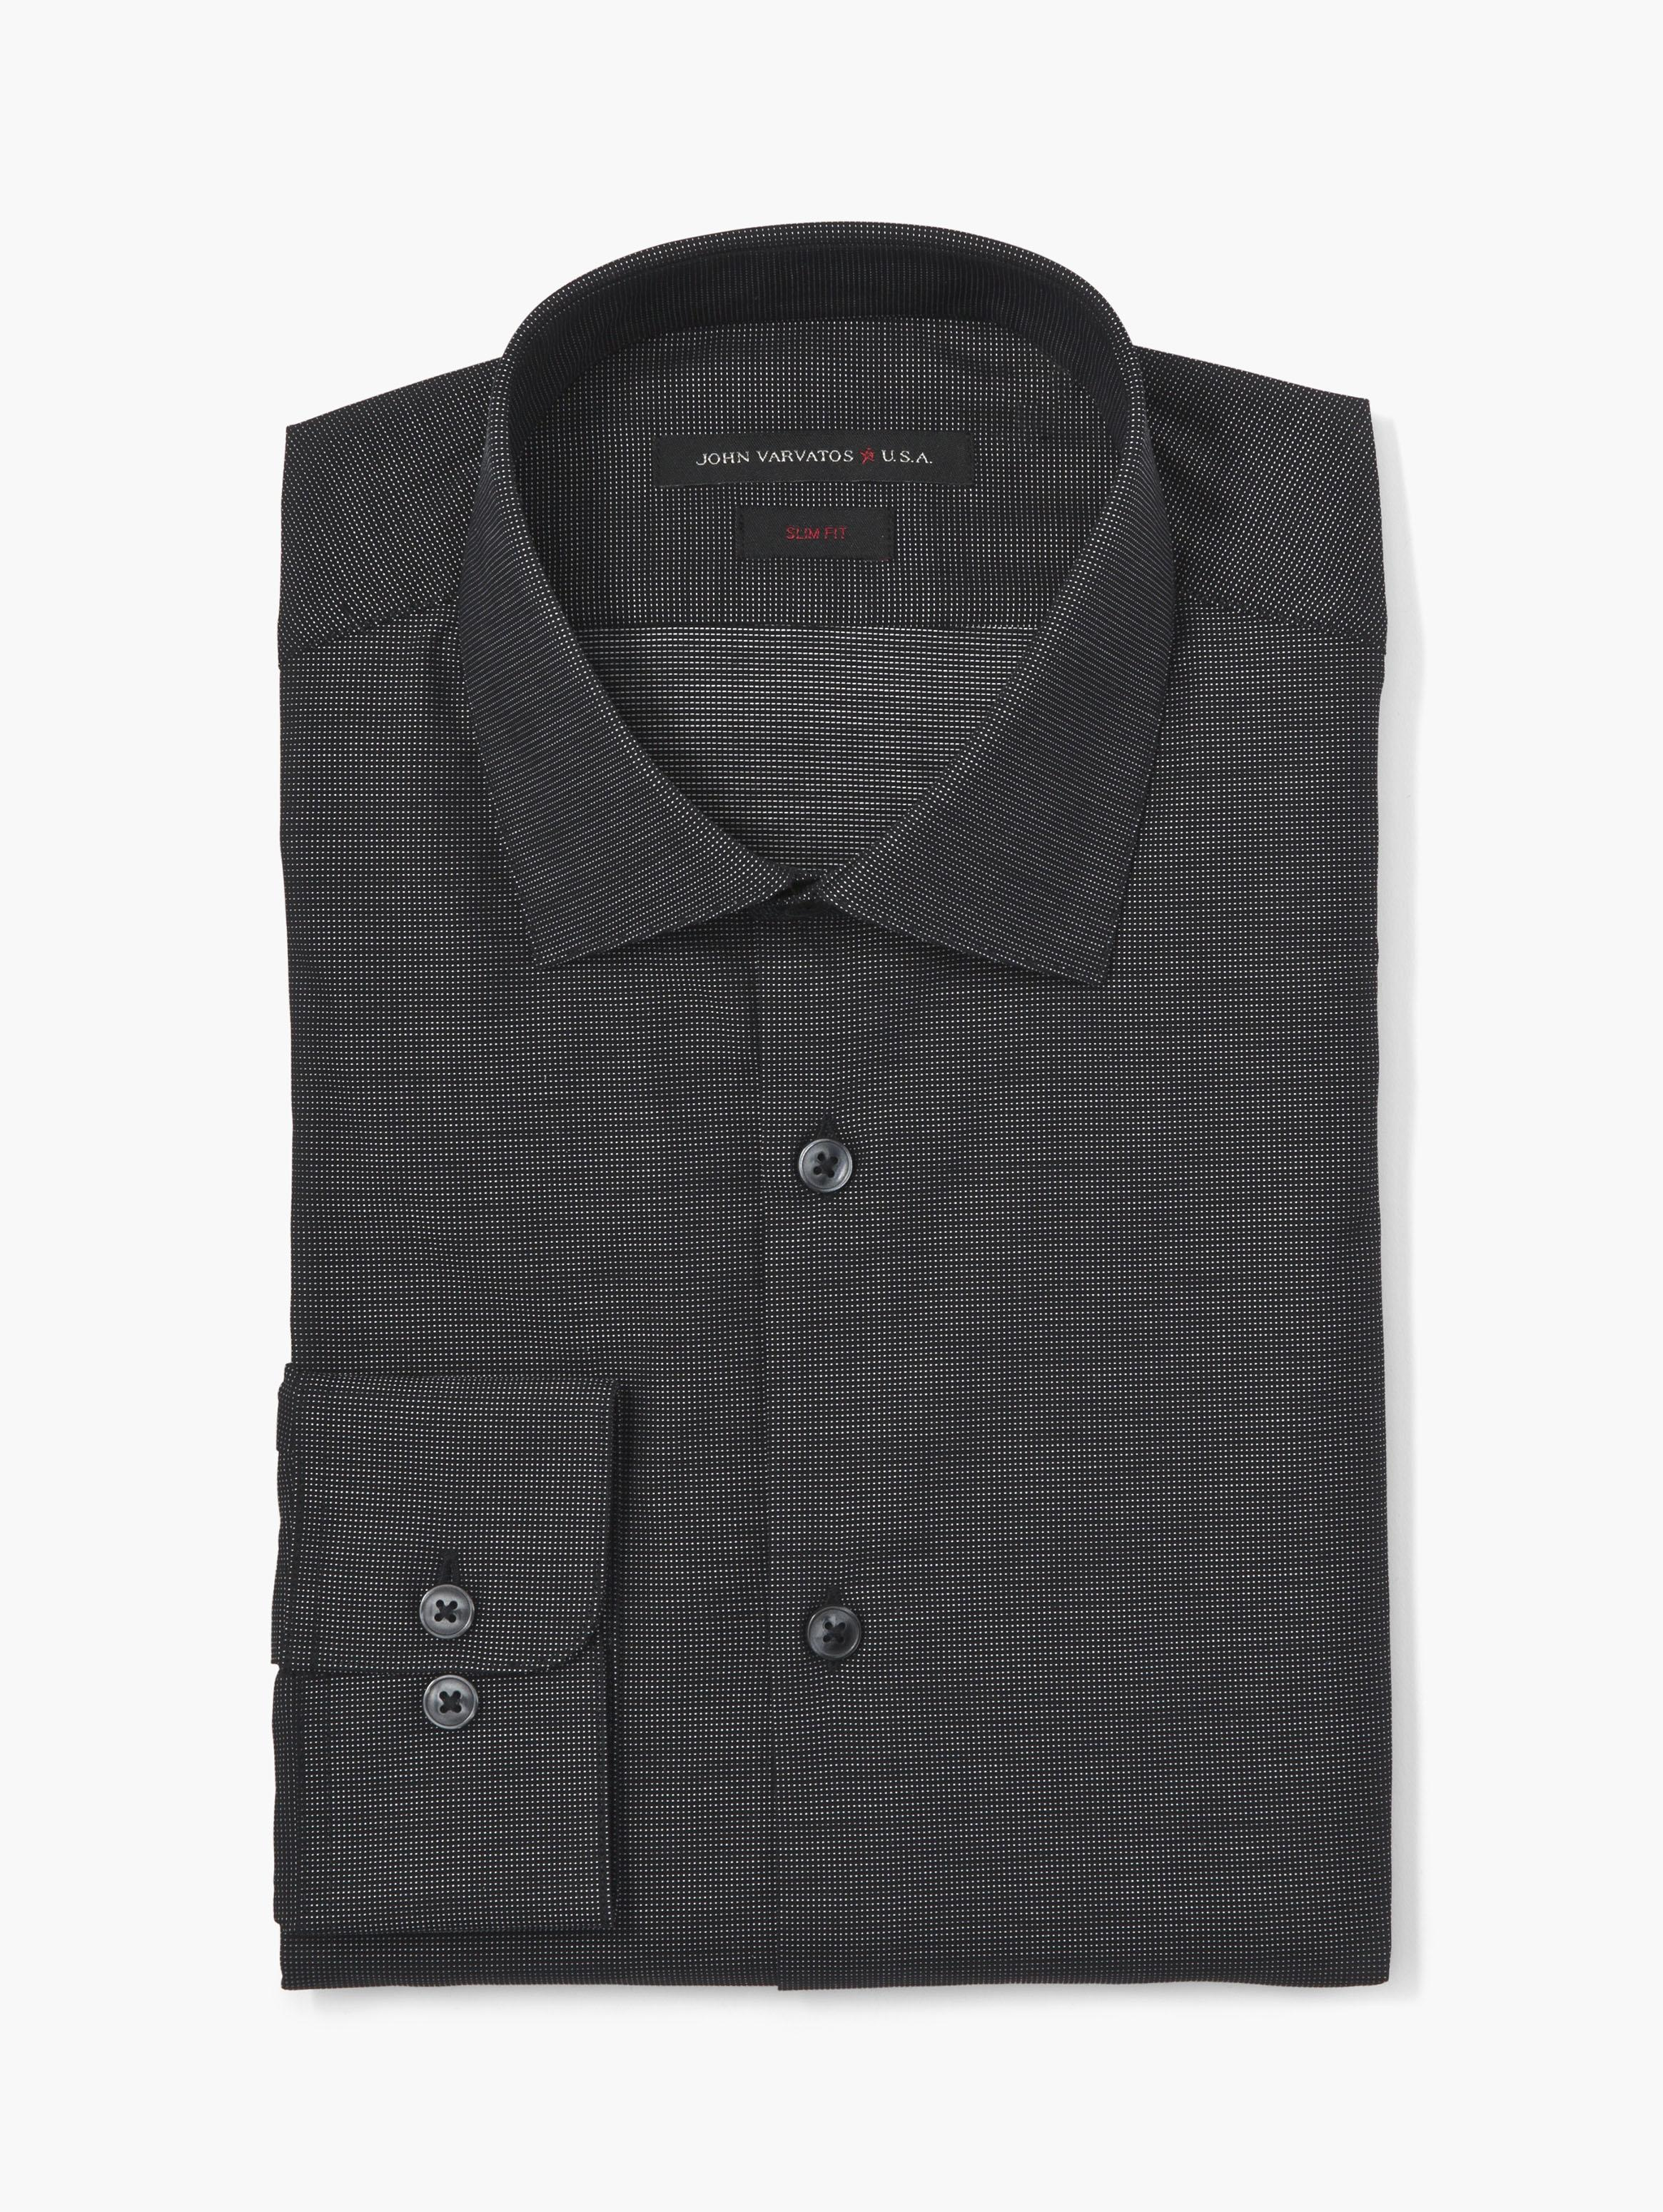 Soho Slim Fit Dress Shirt